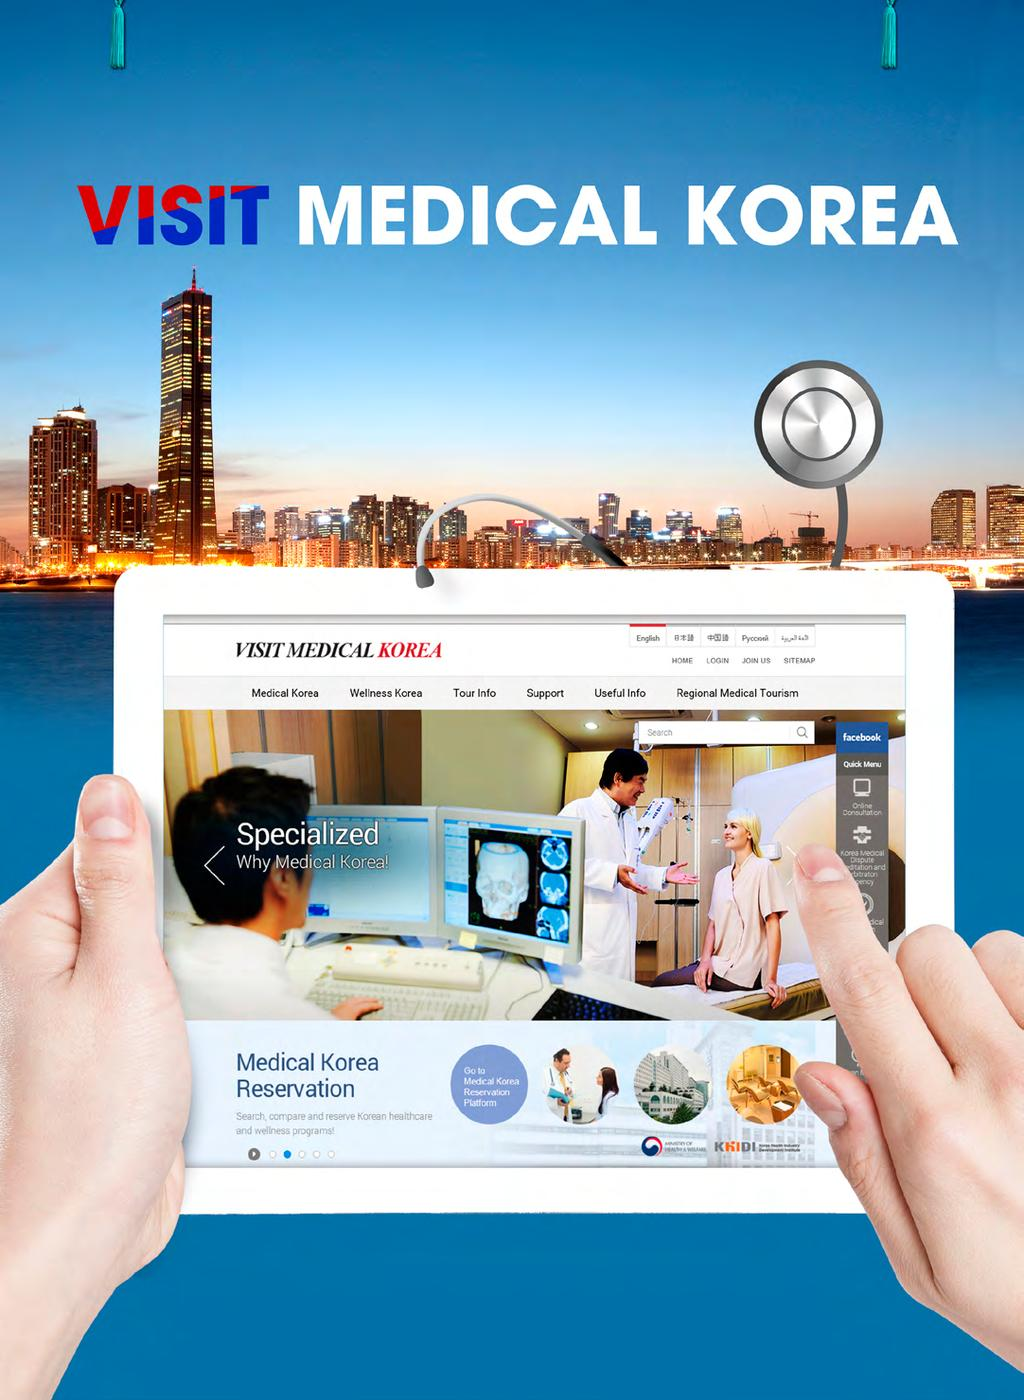 Medical Korea Information Center provides information on medical institutions, legal assistance and other information on medical services in Korea to foreign patients in their native languages.